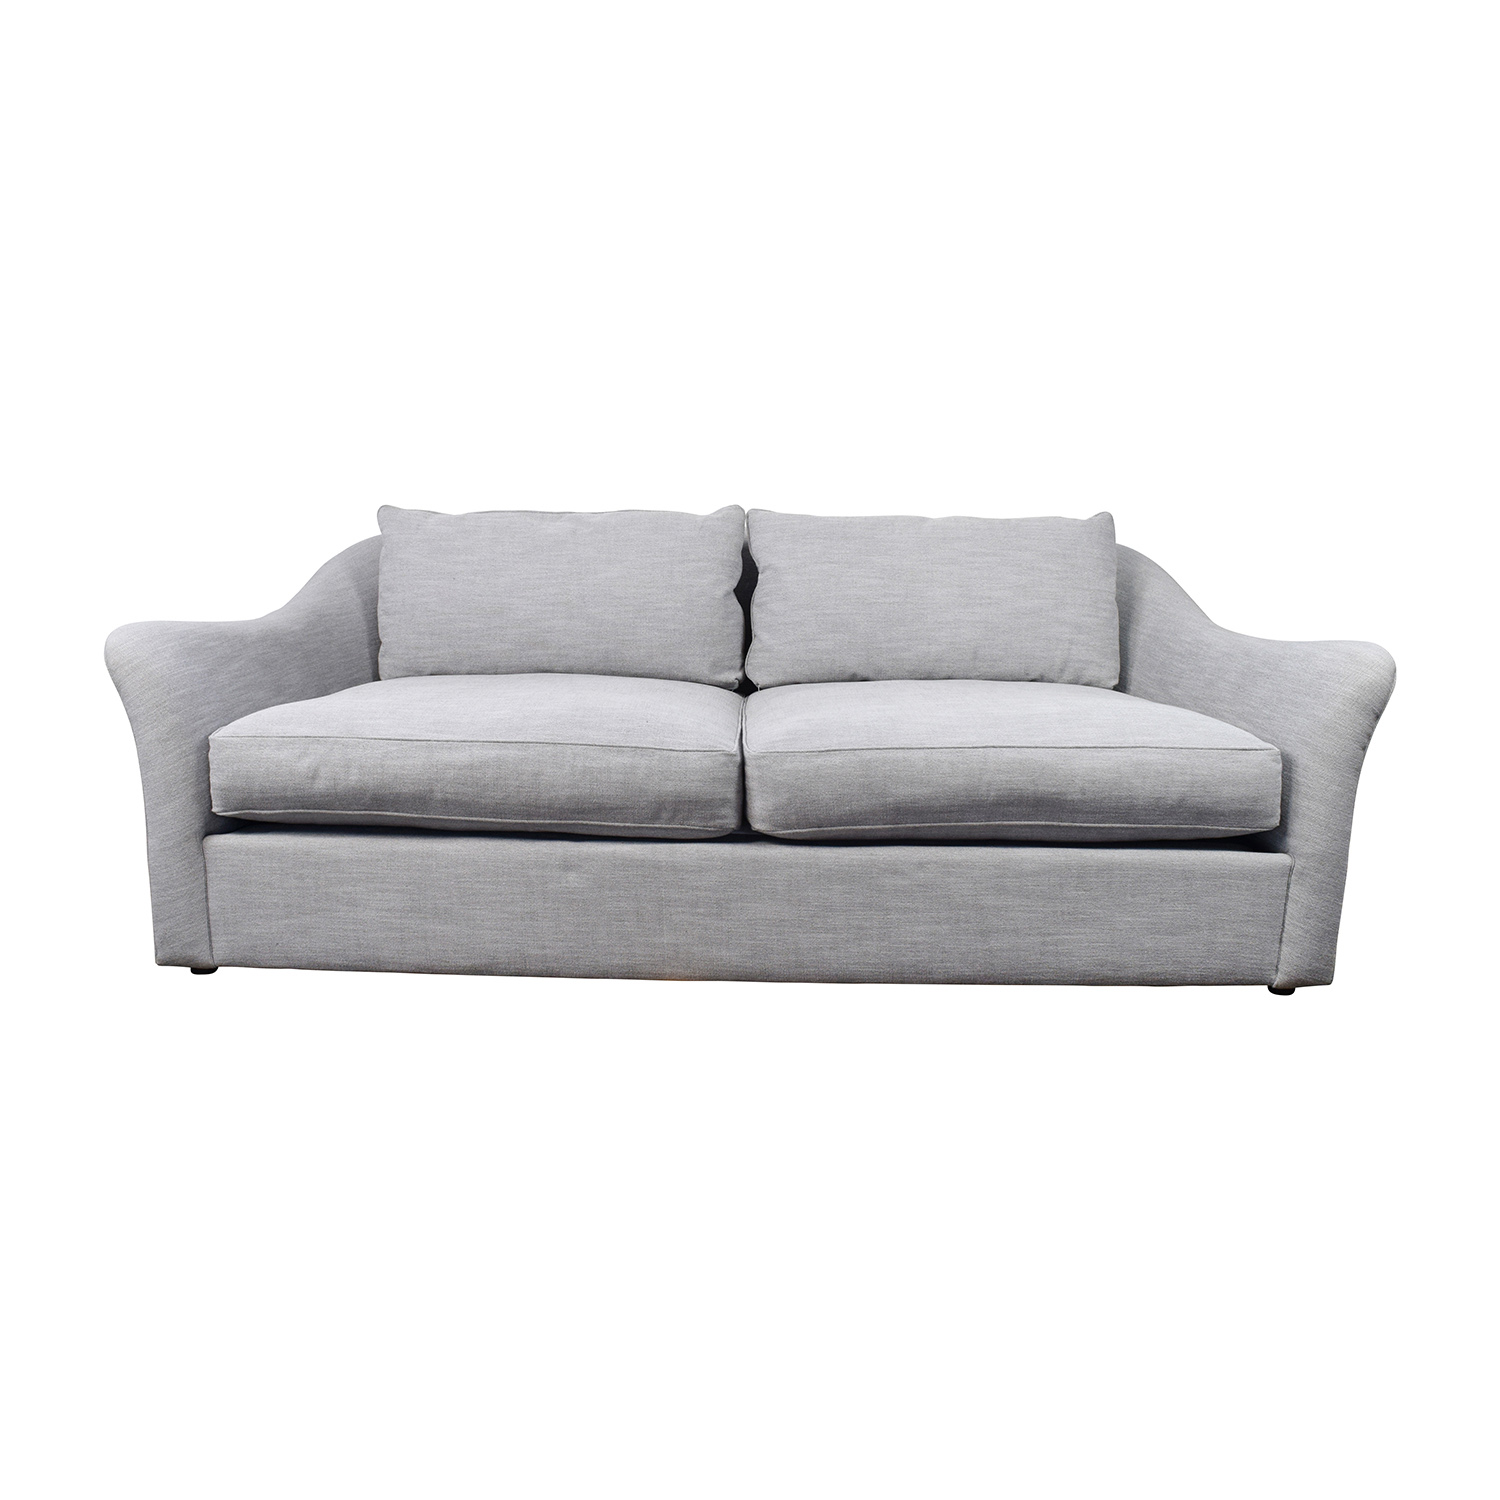 30 off west elm delaney sofa west elm delaney grey sofa for Best west elm sofa